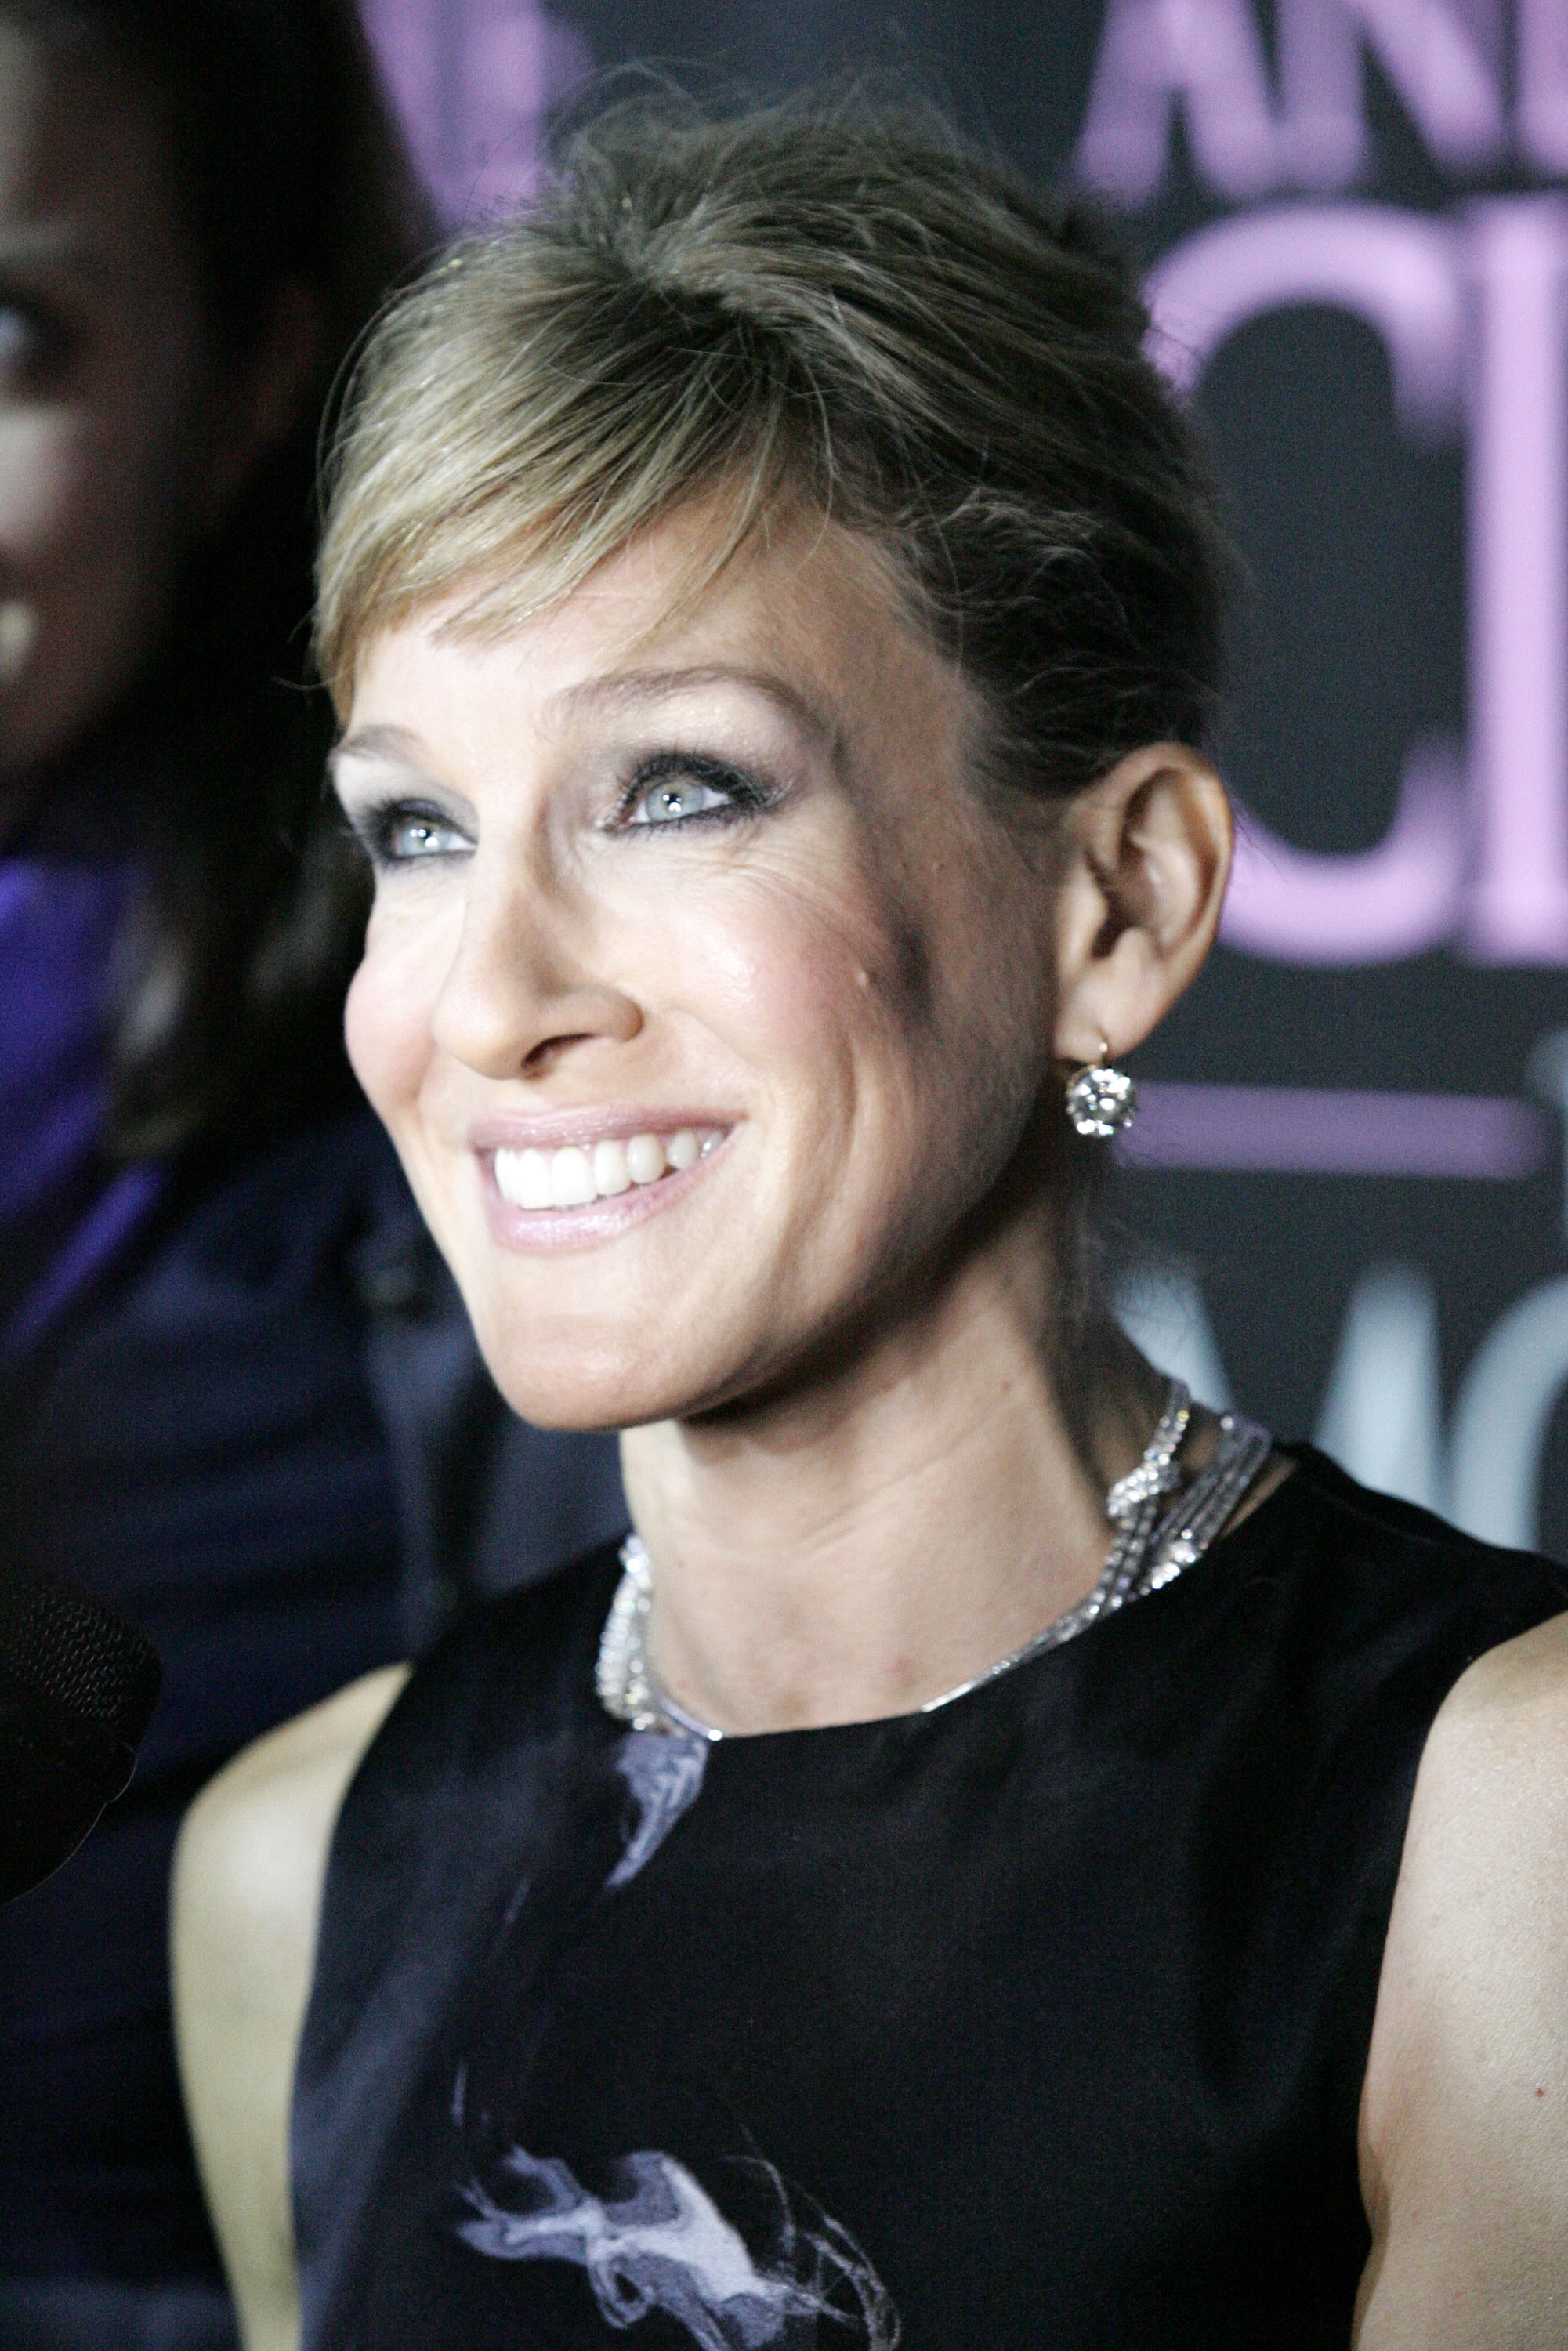 03965_Celebutopia-Sarah_Jessica_Parker-Sex_and_the_City_The_Movie_DVD_launch_in_New_York_City-11_122_92lo.jpg